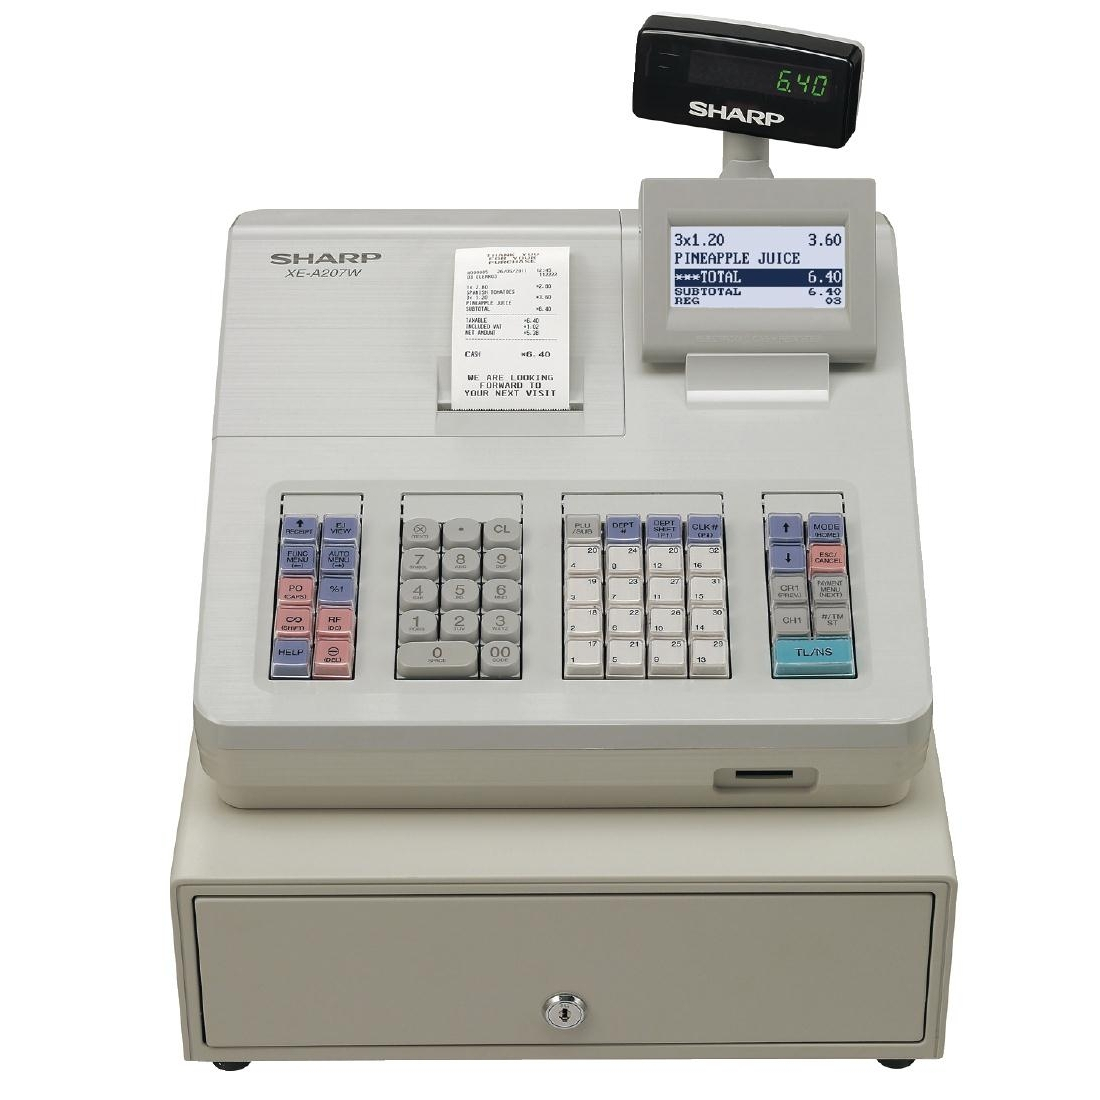 Sharp Cash Register XE-A207W